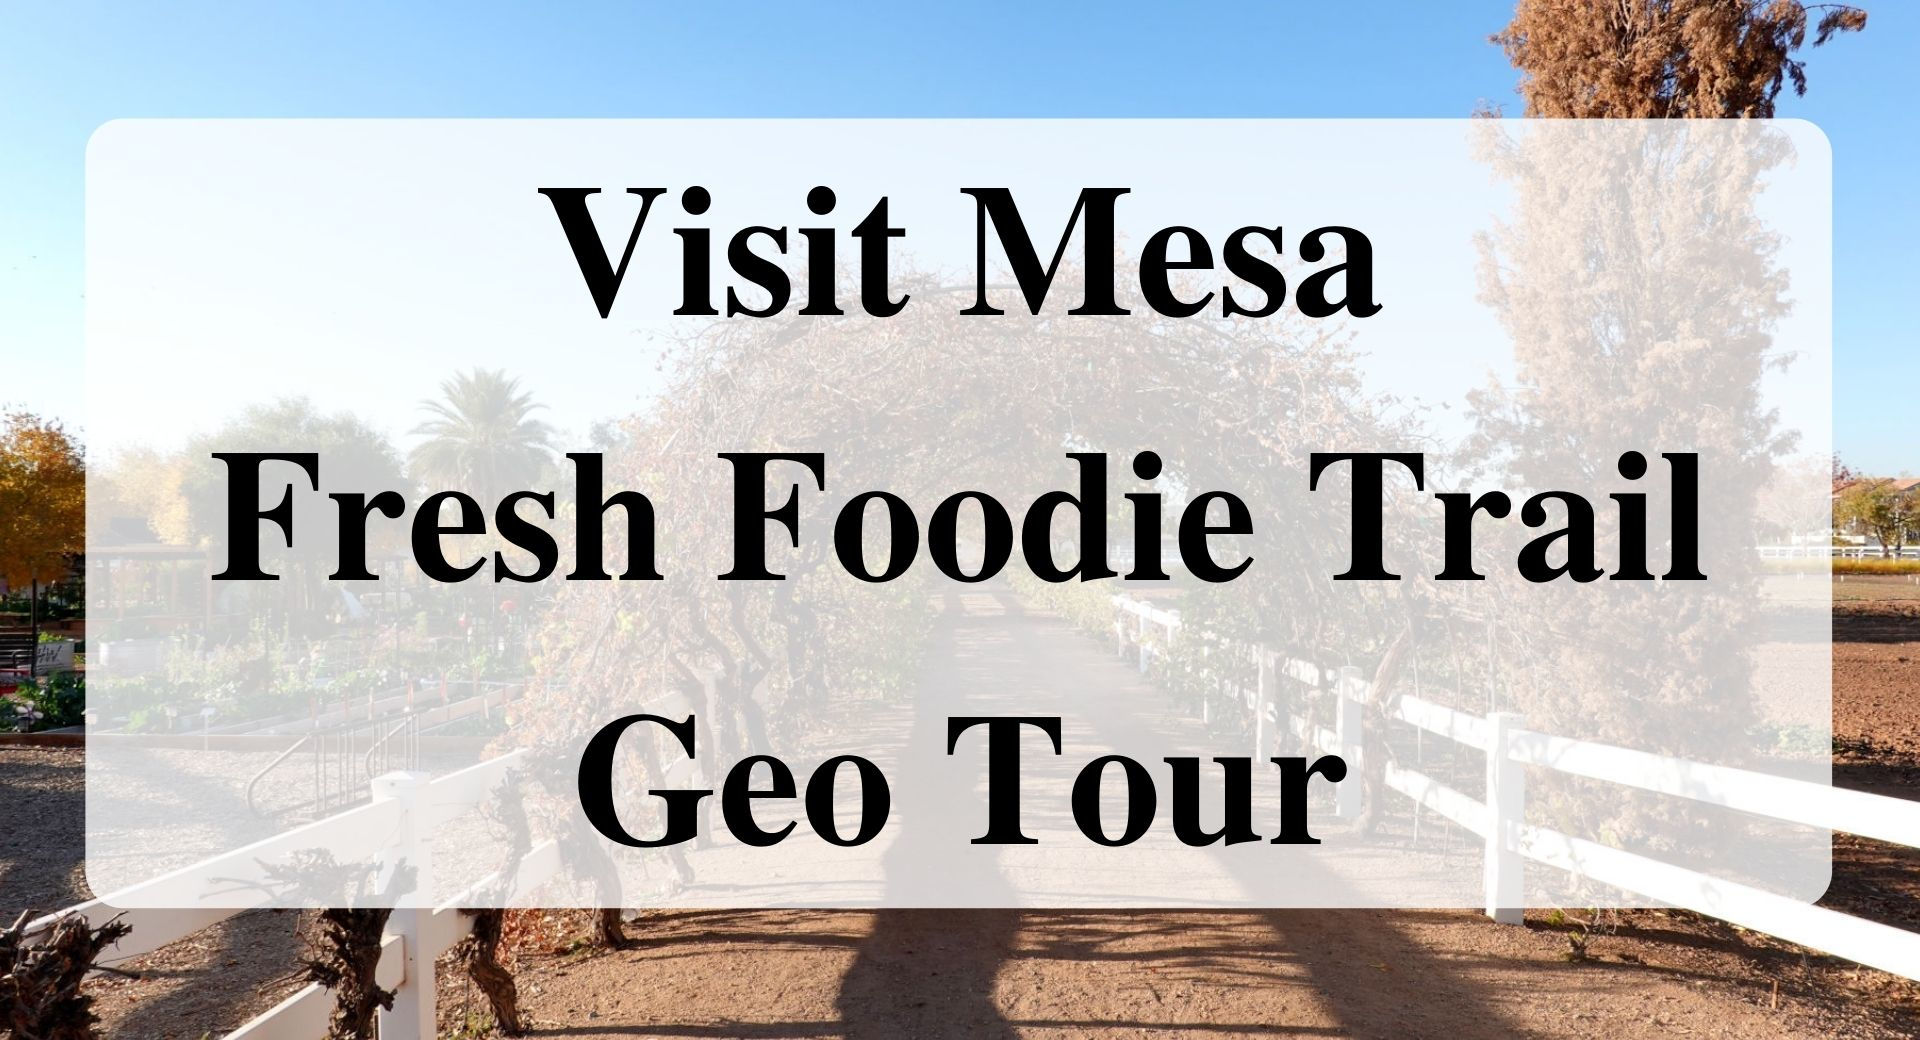 Visit Mesa Fresh Foodie Trail Geo Tour Forever sabbatical